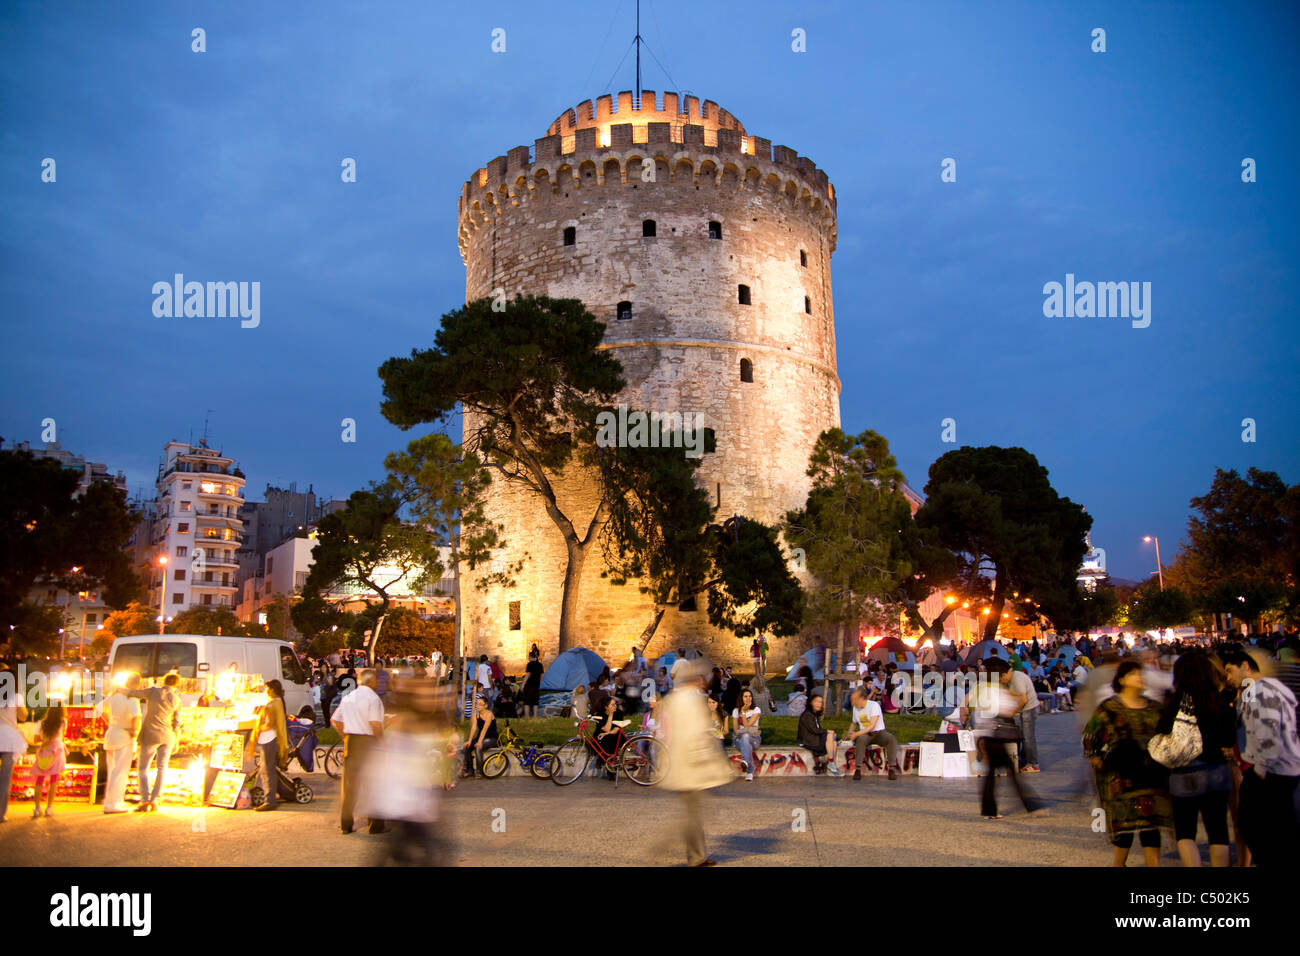 a busy evening at the illuminated white tower, symbol of the town of Thessaloniki, Macedonia, Greece - Stock Image